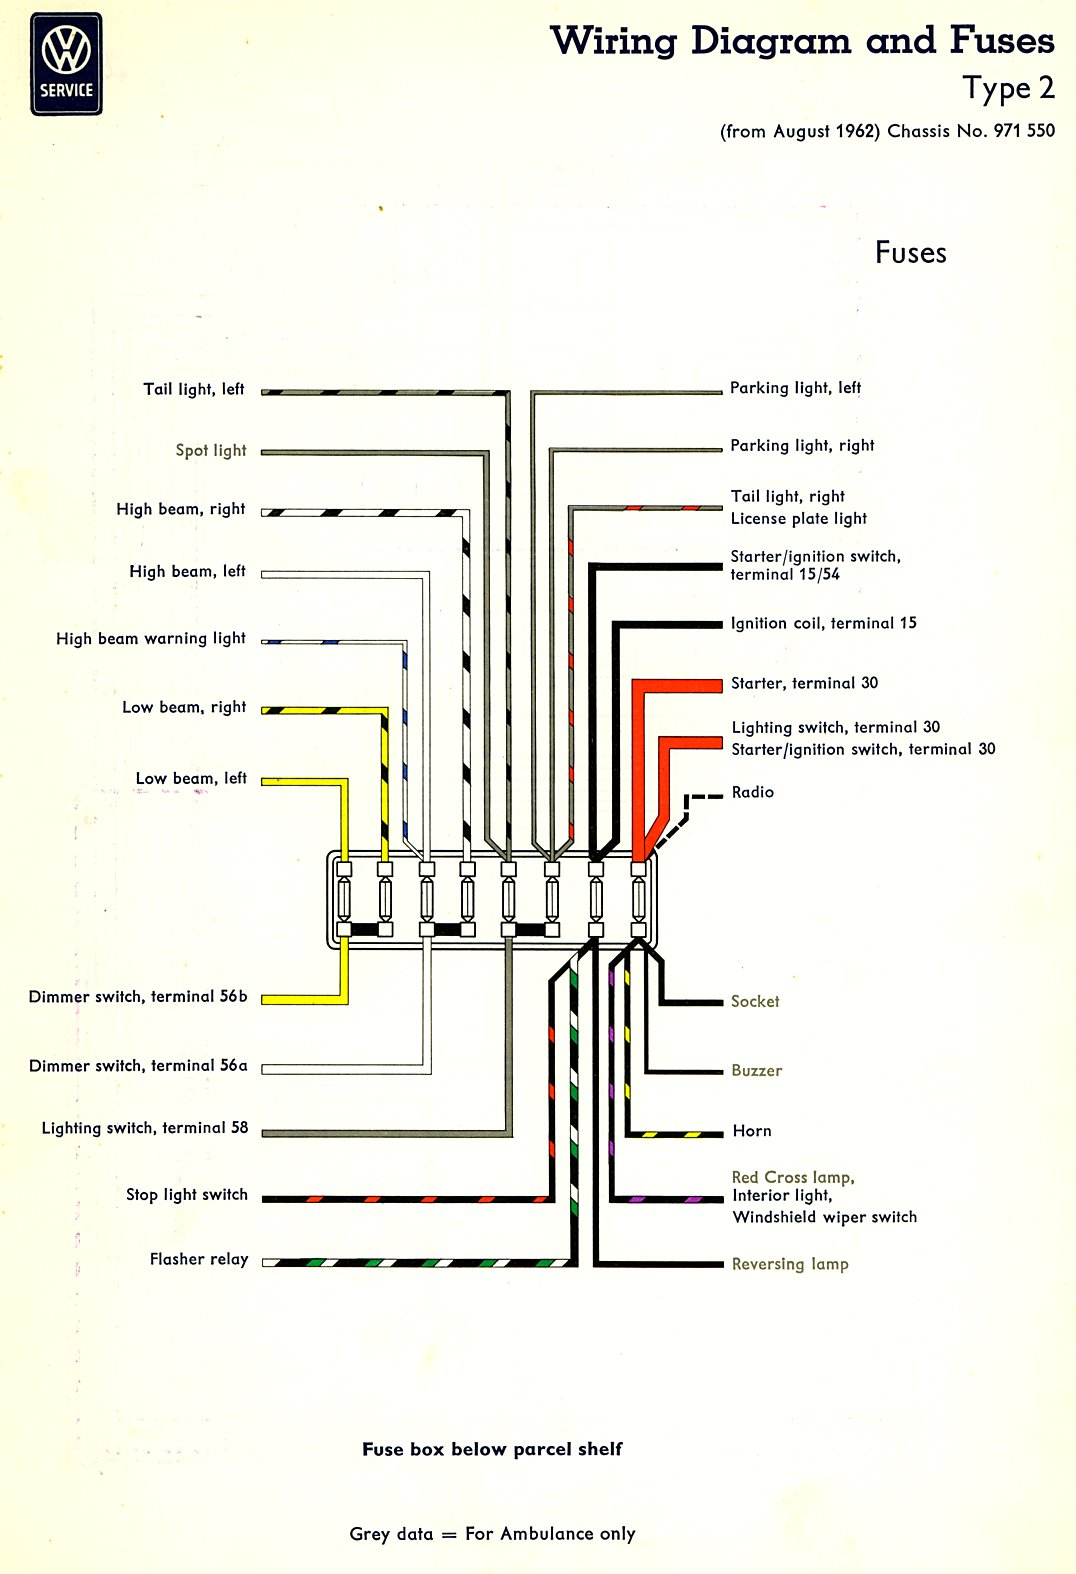 Oldsmobile vin location wiring diagram and fuse box diagram images - Oldsmobile Vin Location Wiring Diagram And Fuse Box Diagram Images 39